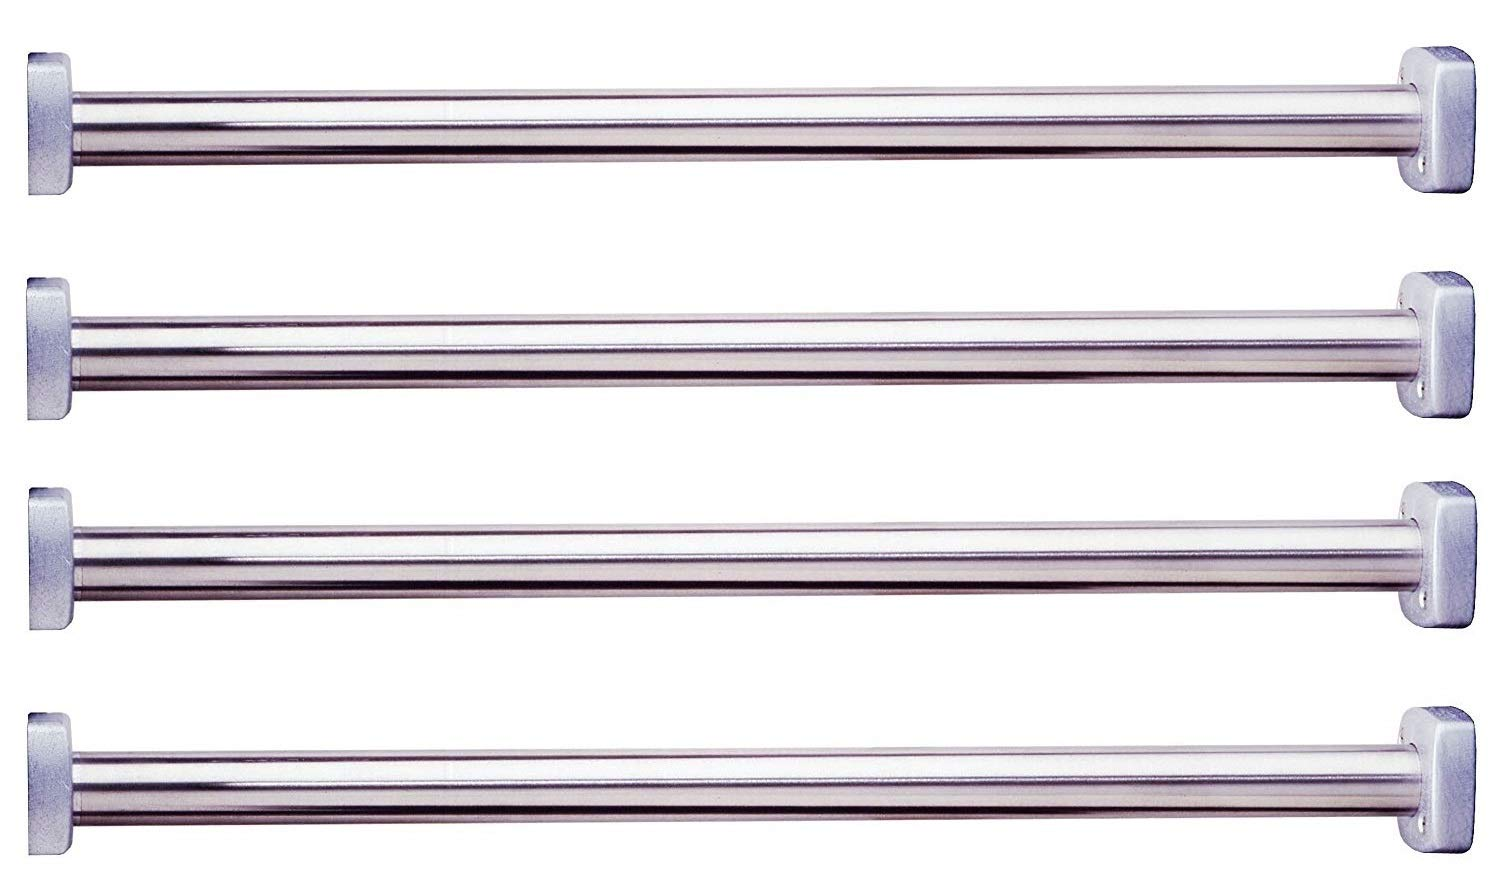 Bobrick 6047x36 ClassicSeries 304 Stainless Steel Extra Heavy Duty Shower Curtain Rod with Square End Flange, Satin Finish, 1-1/4'' Diameter x 36'' Length (Pack of 4)